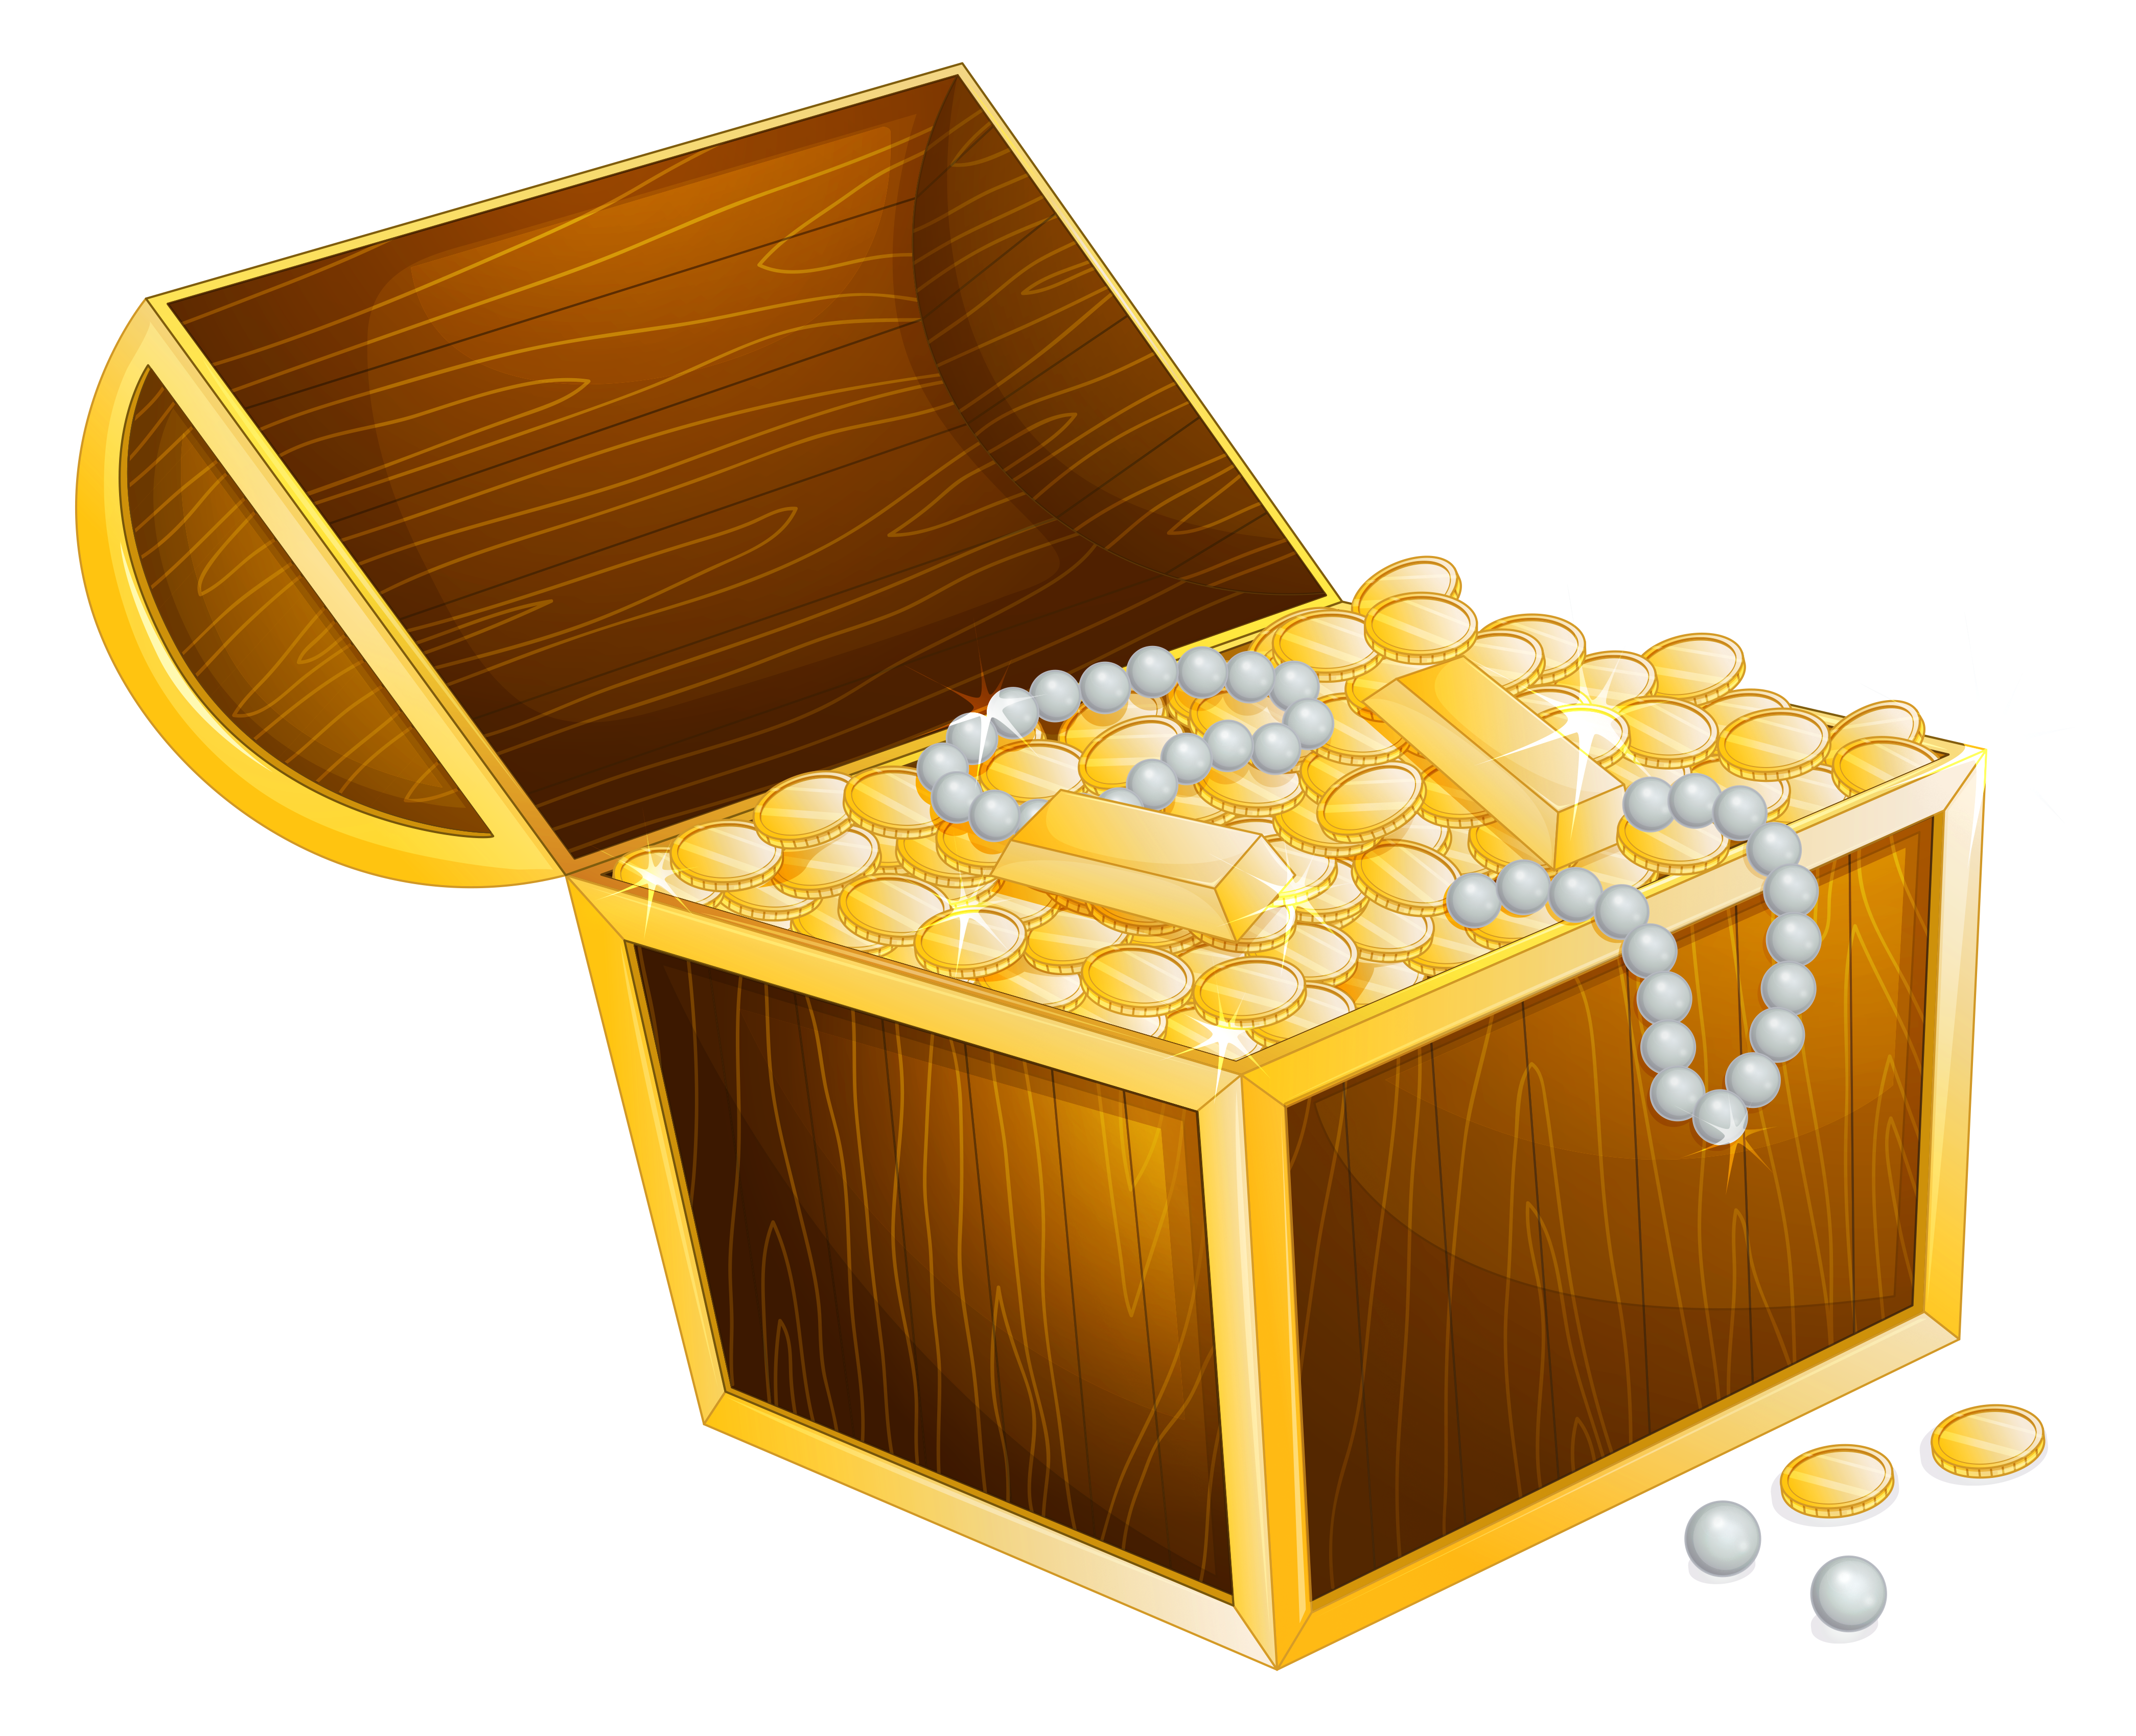 Box clipart transparent background  Treasure Gallery full Chest